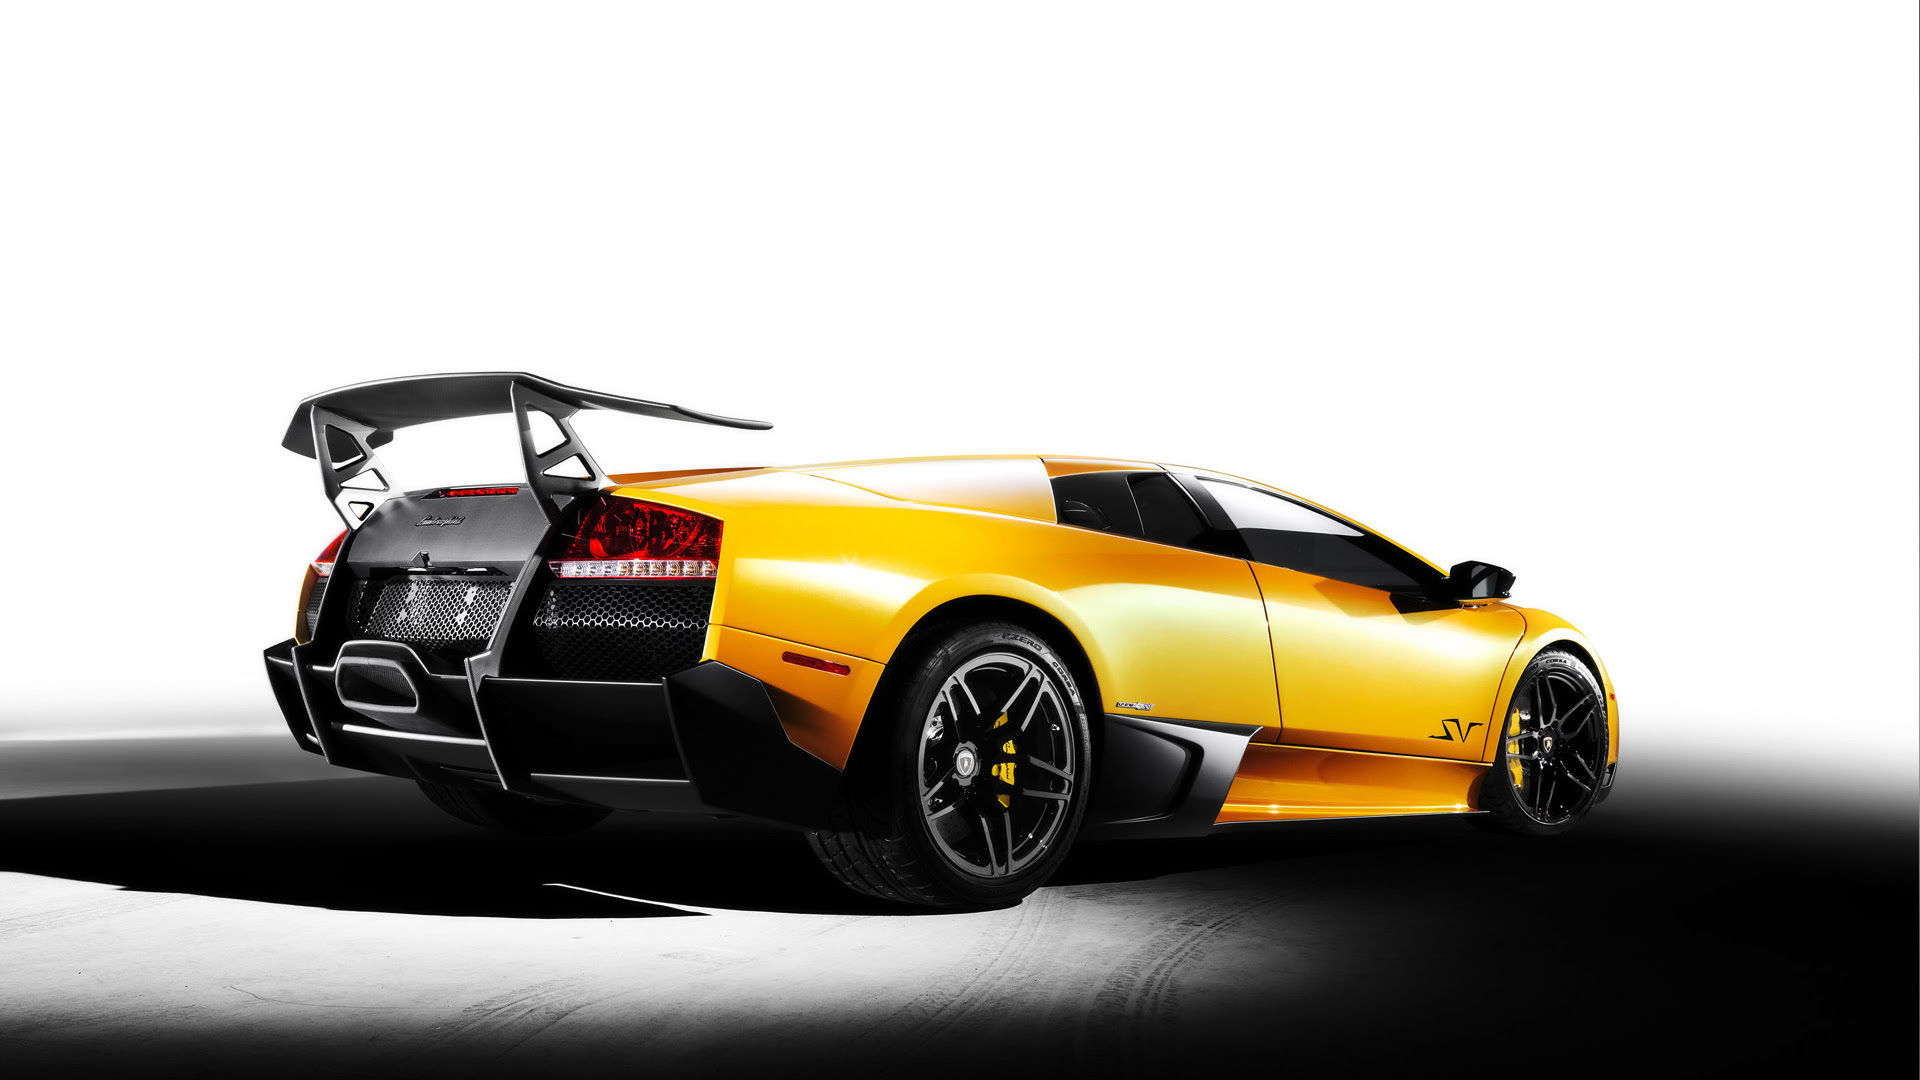 Car wallpapers: Lamborghini